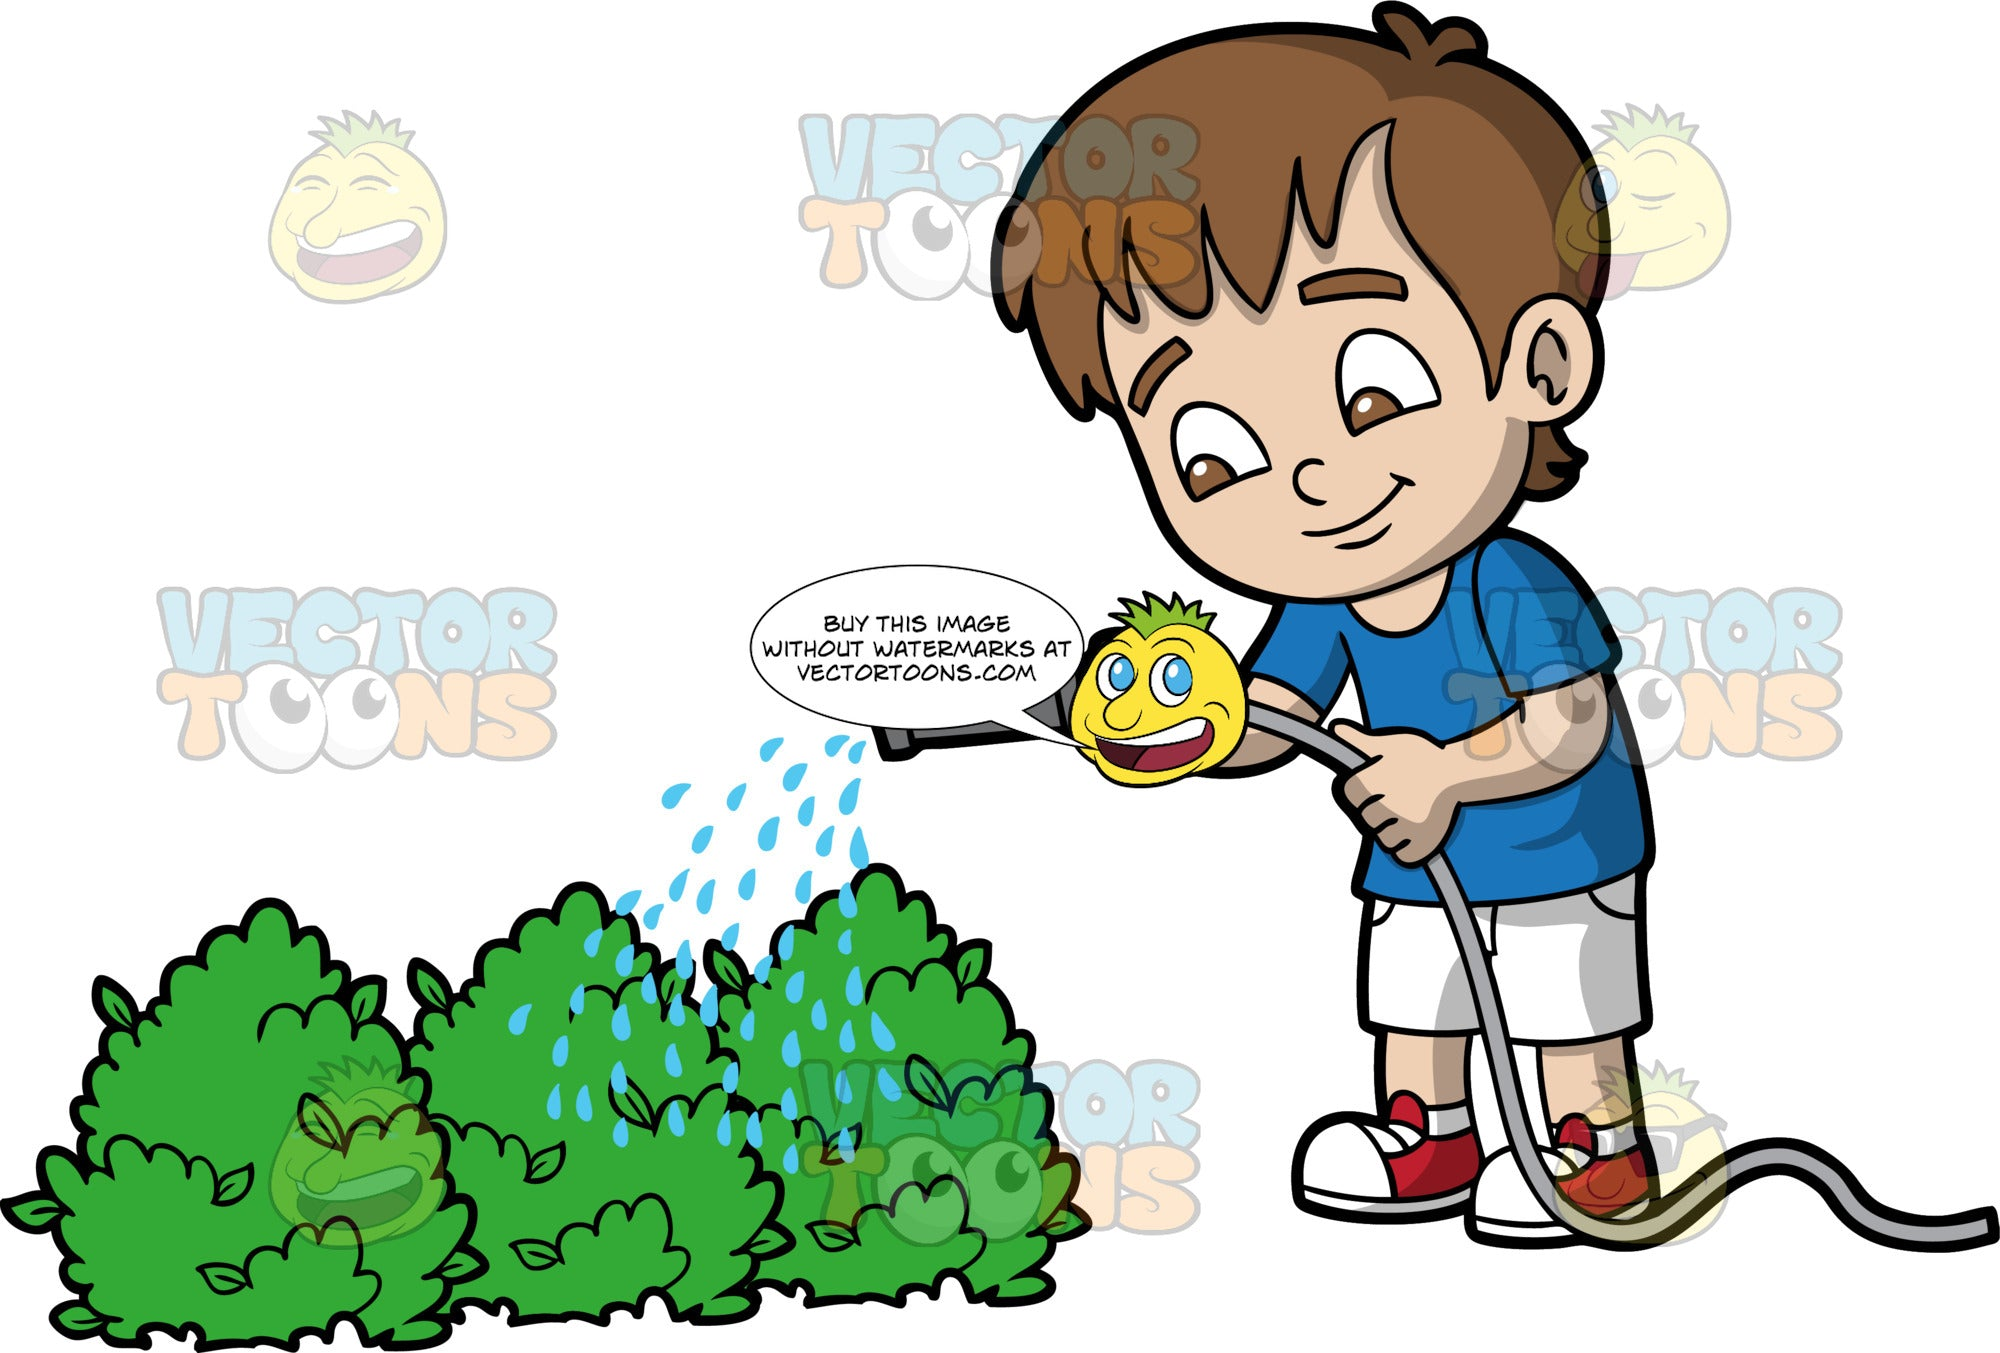 A young boy watering some bushes. A boy with brown hair and eyes, wearing white shorts, a blue shirt, and red and white sneakers, using a hose to water some bushes outside